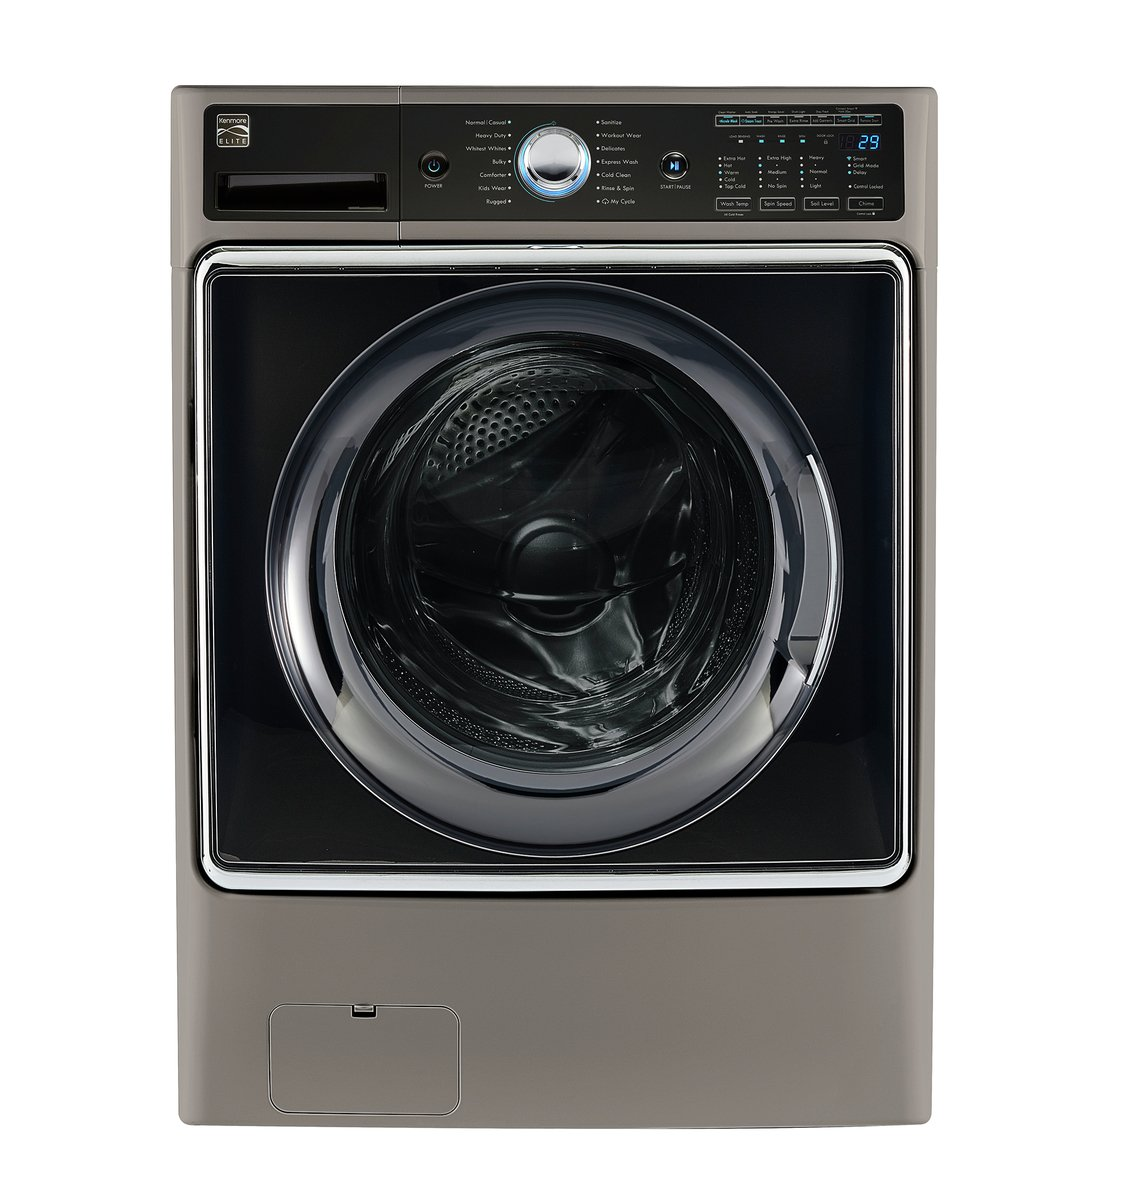 Kenmore Smart 75042 5.2 cu.ft. Front Load Washer with Accela Wash Technology in Metallic Silver  - Works with Amazon Alexa, includes delivery and hookup (Available in select cities only)